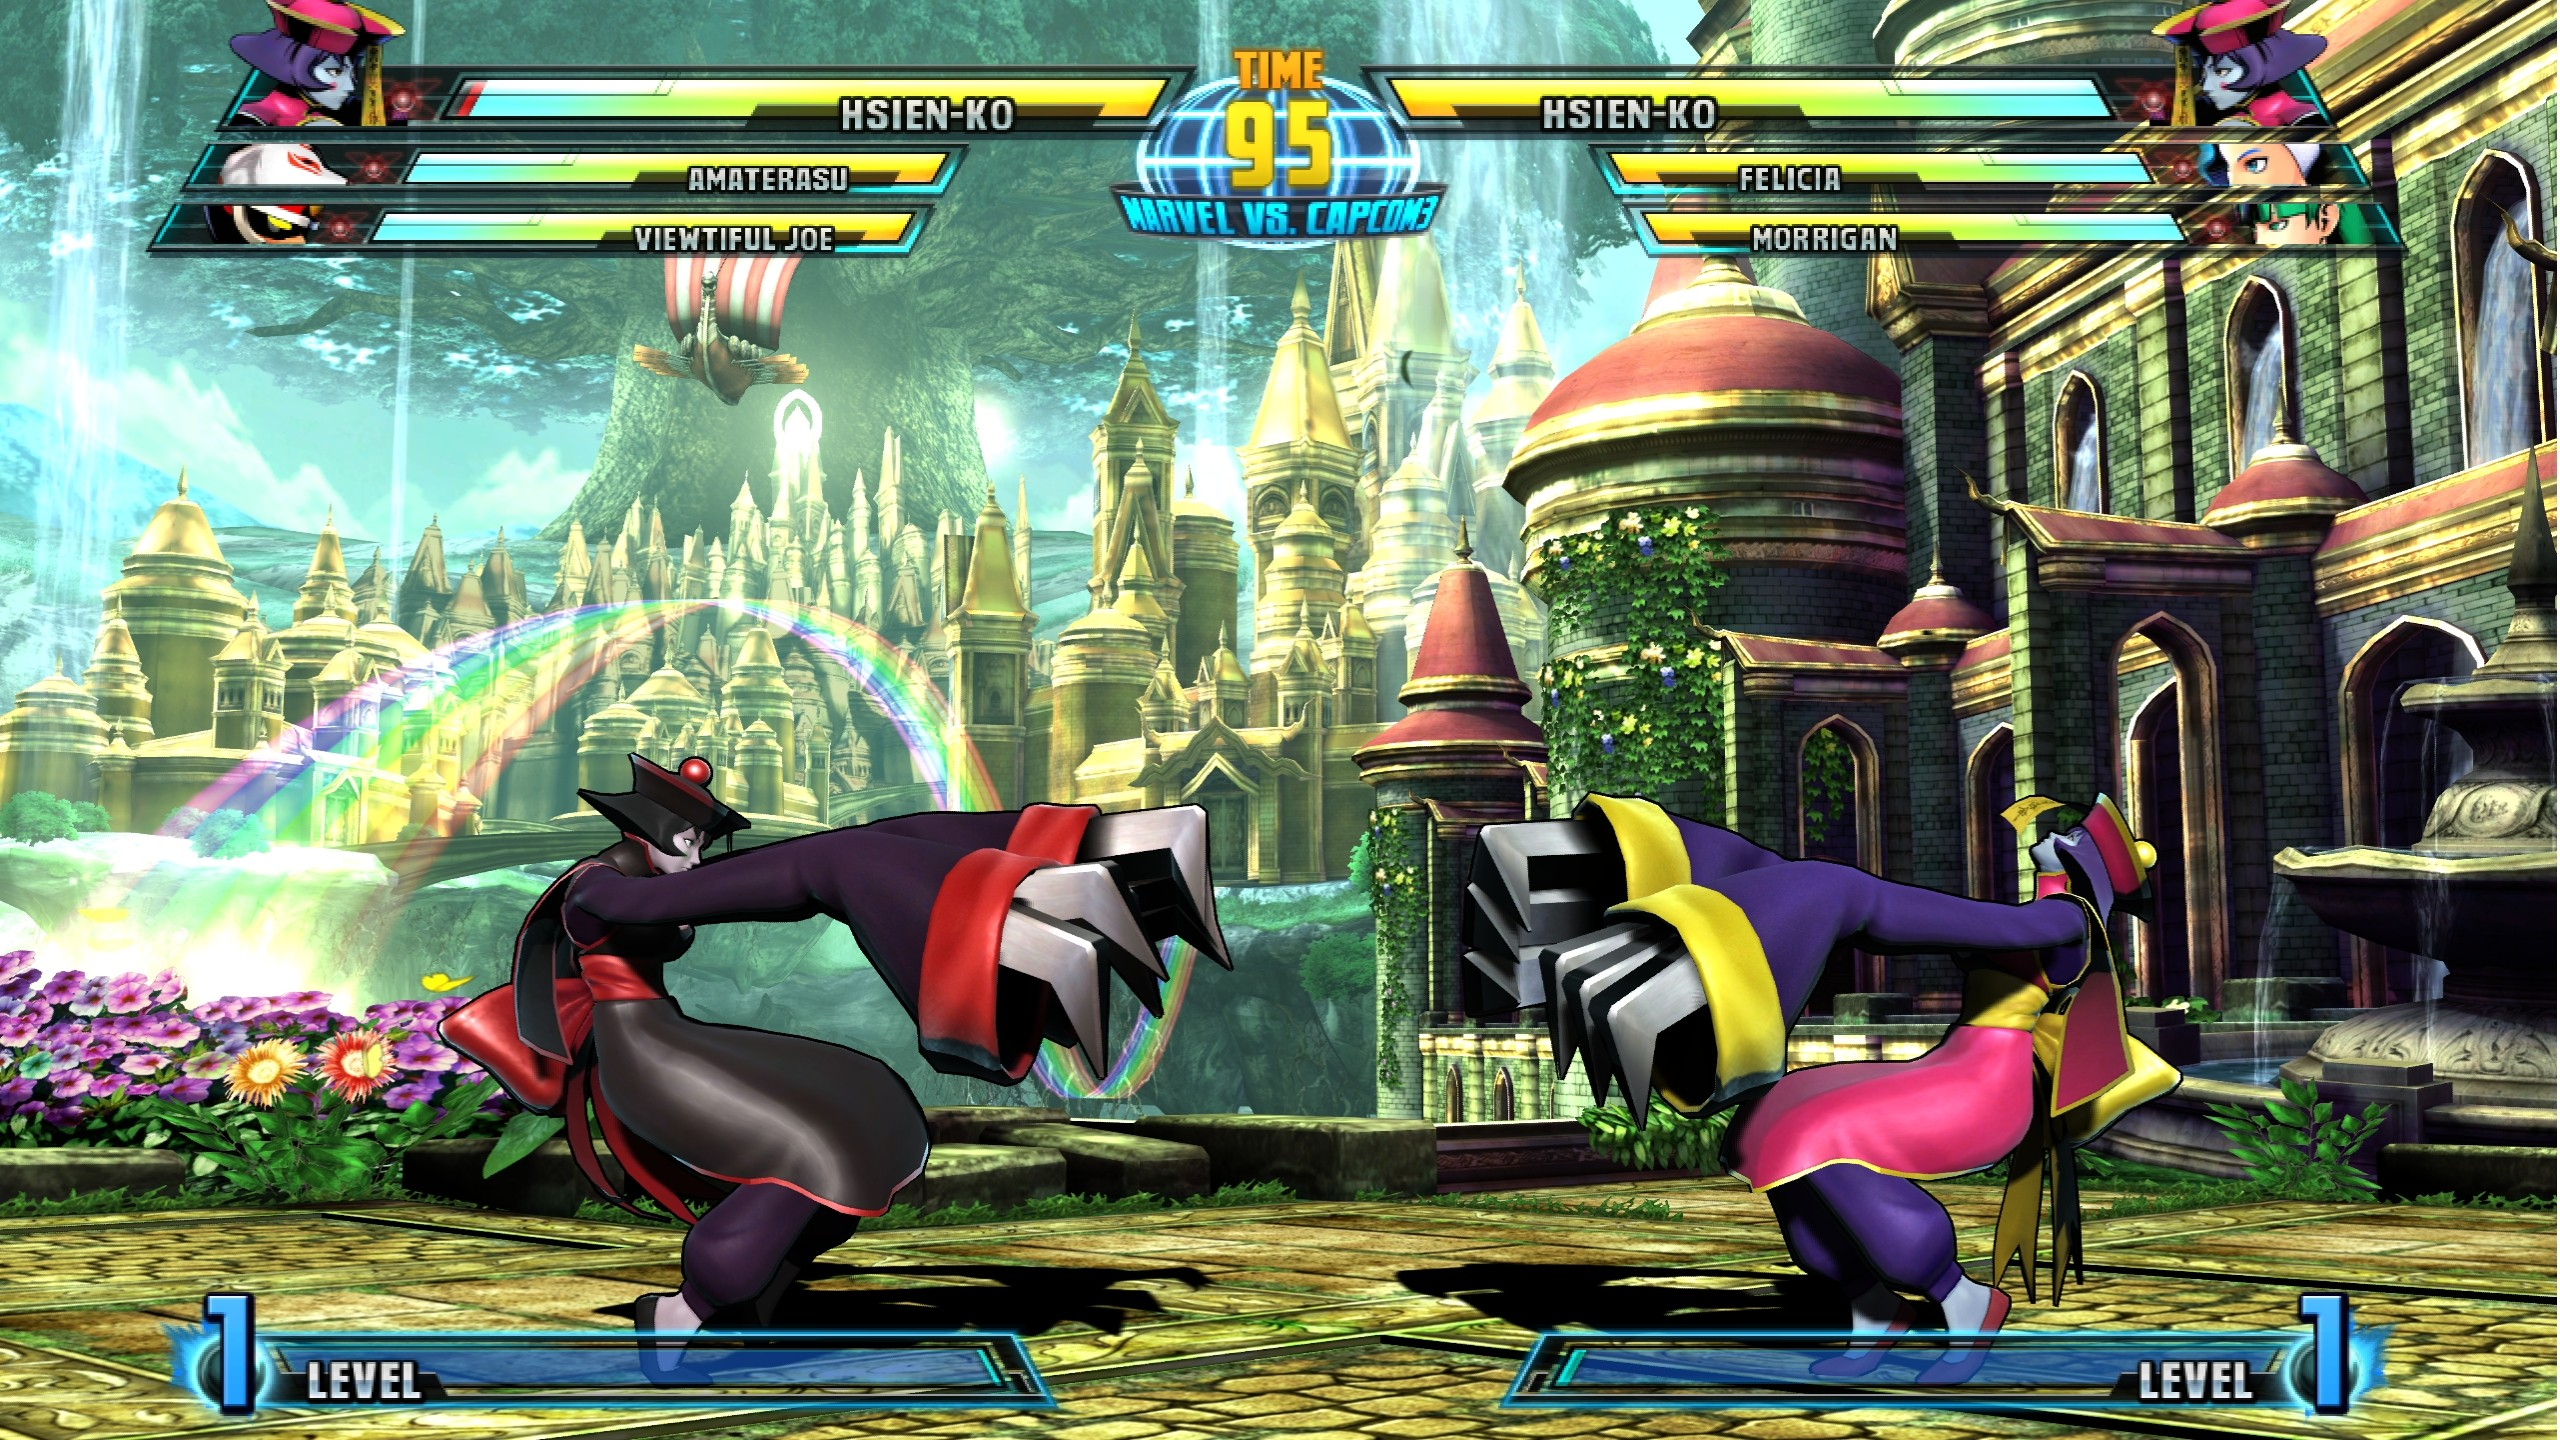 Marvel vs. Capcom 3: Fate of Two Worlds - Marvel vs. Capcom 3: Fate of Two Worlds 2K